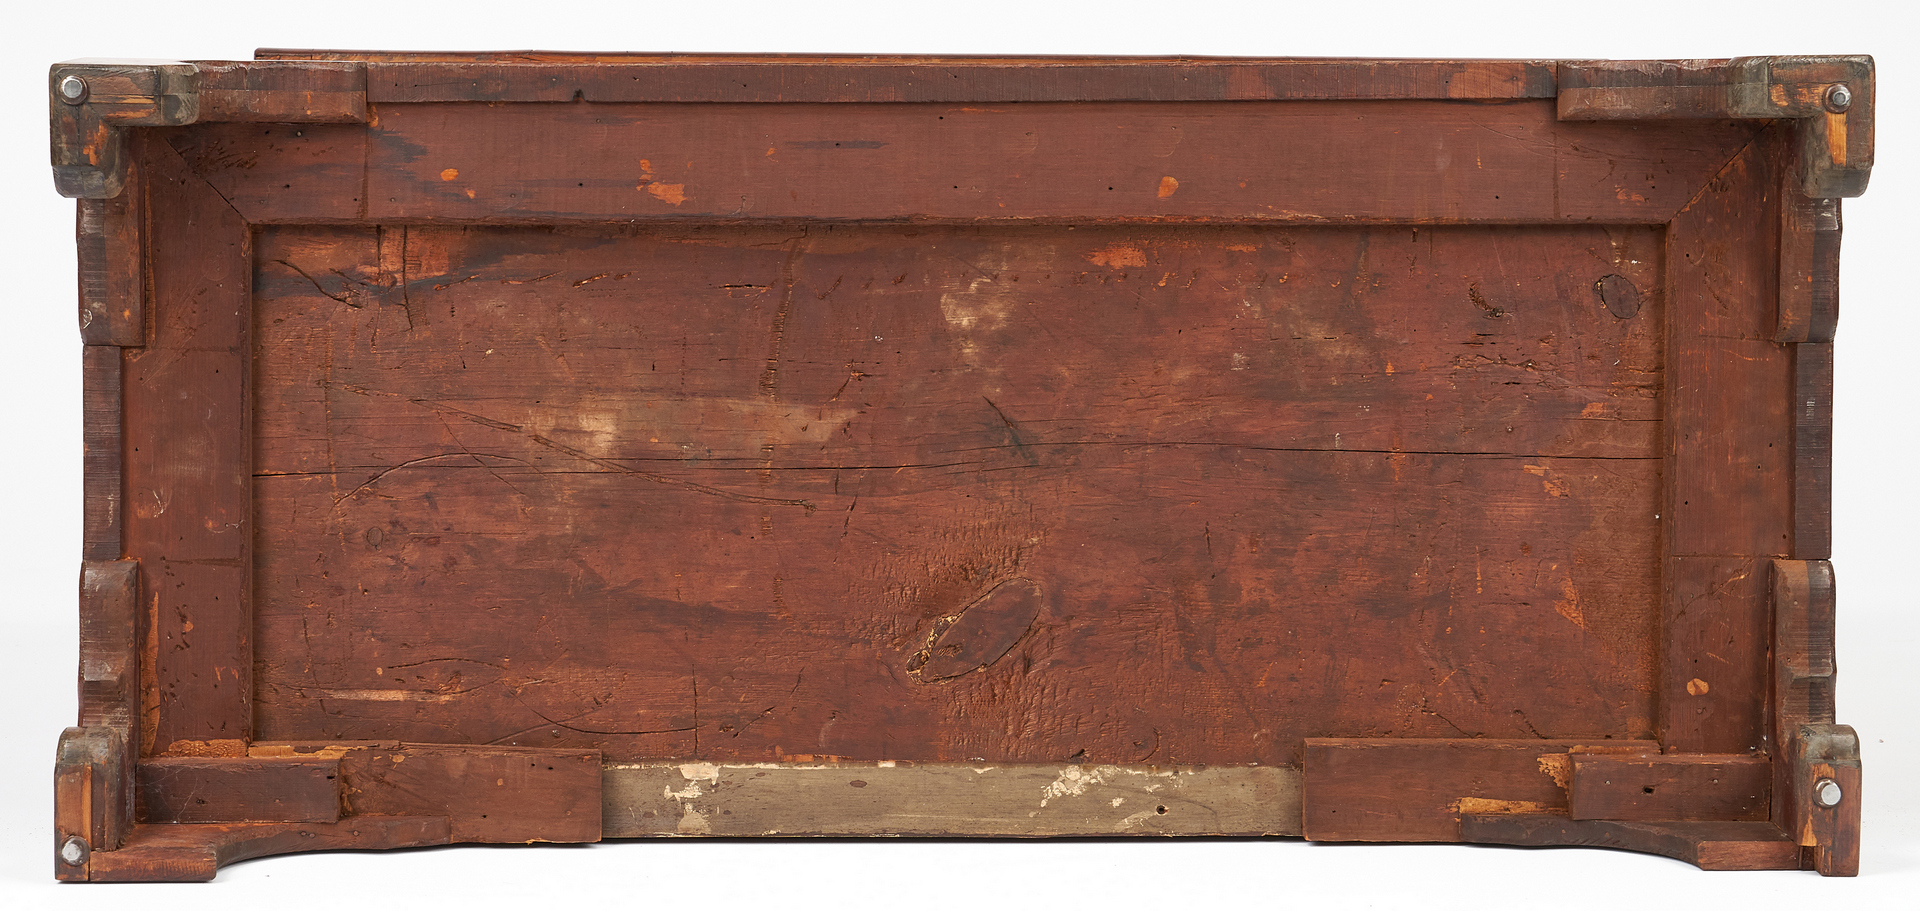 Lot 343: American Chippendale Mahogany Chest of Drawers